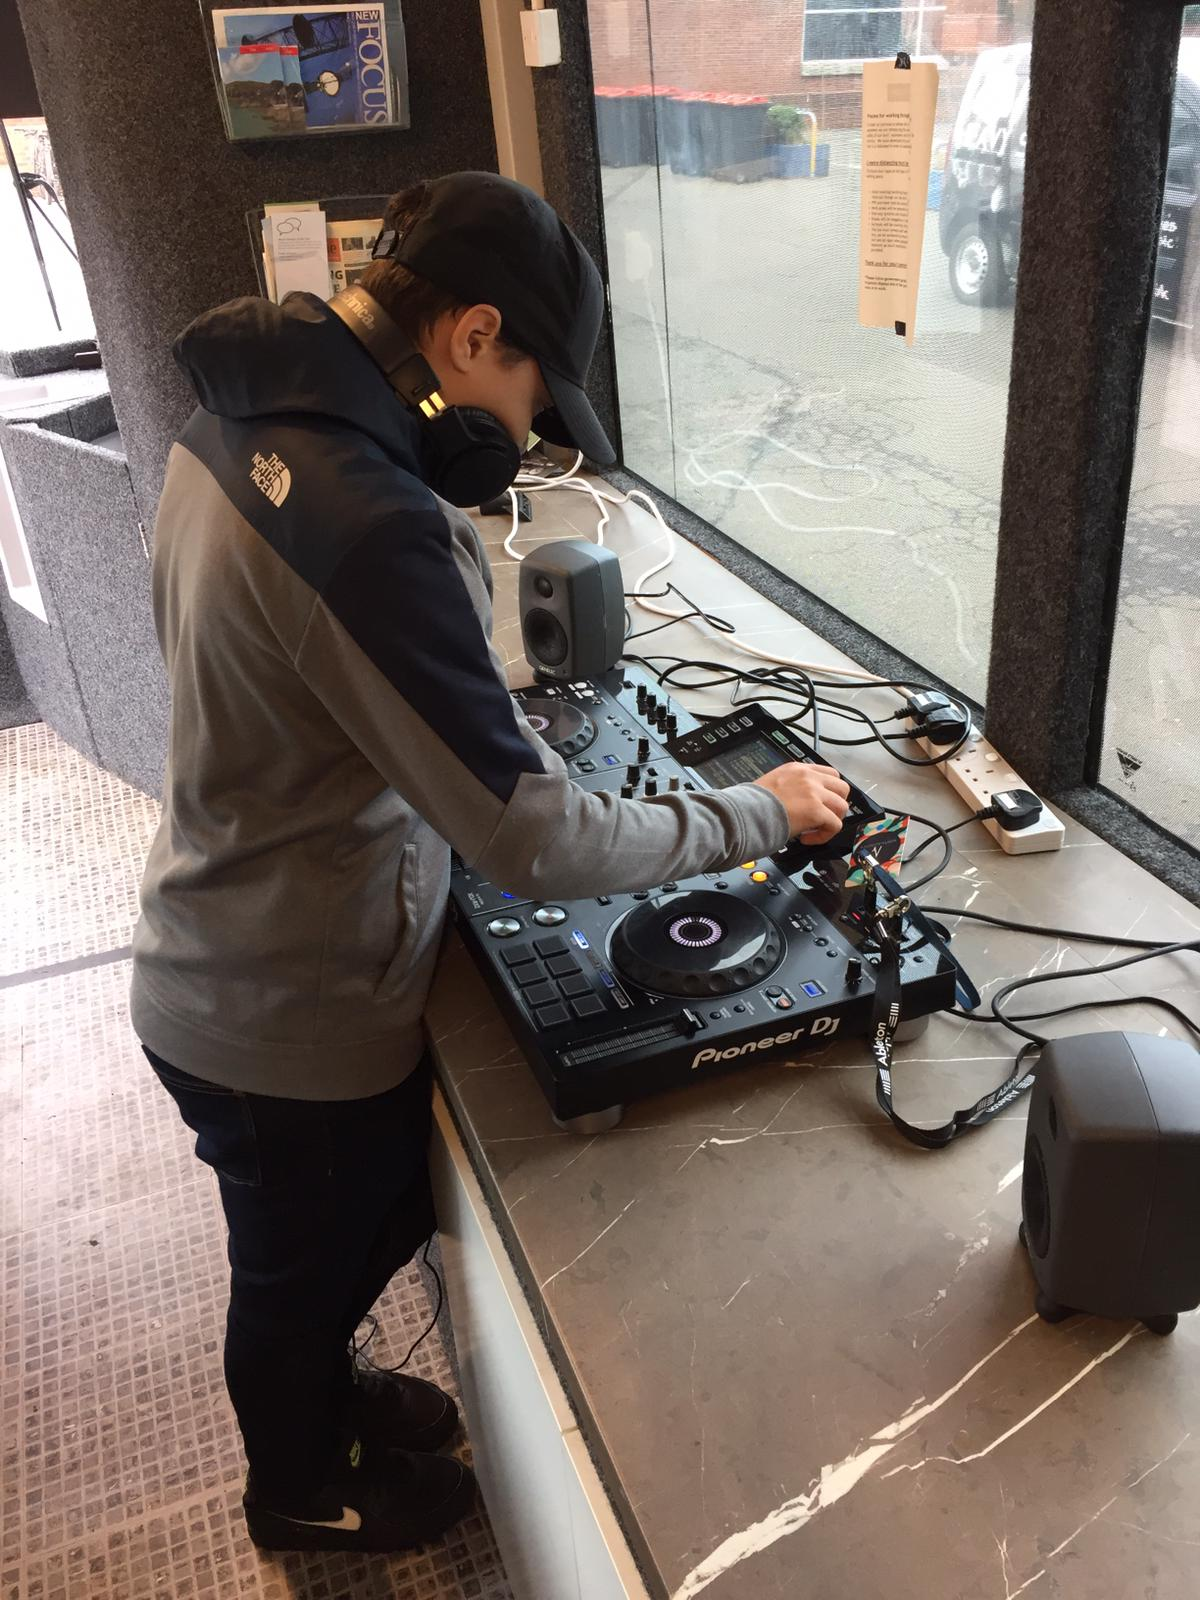 A young person uses mixing decks